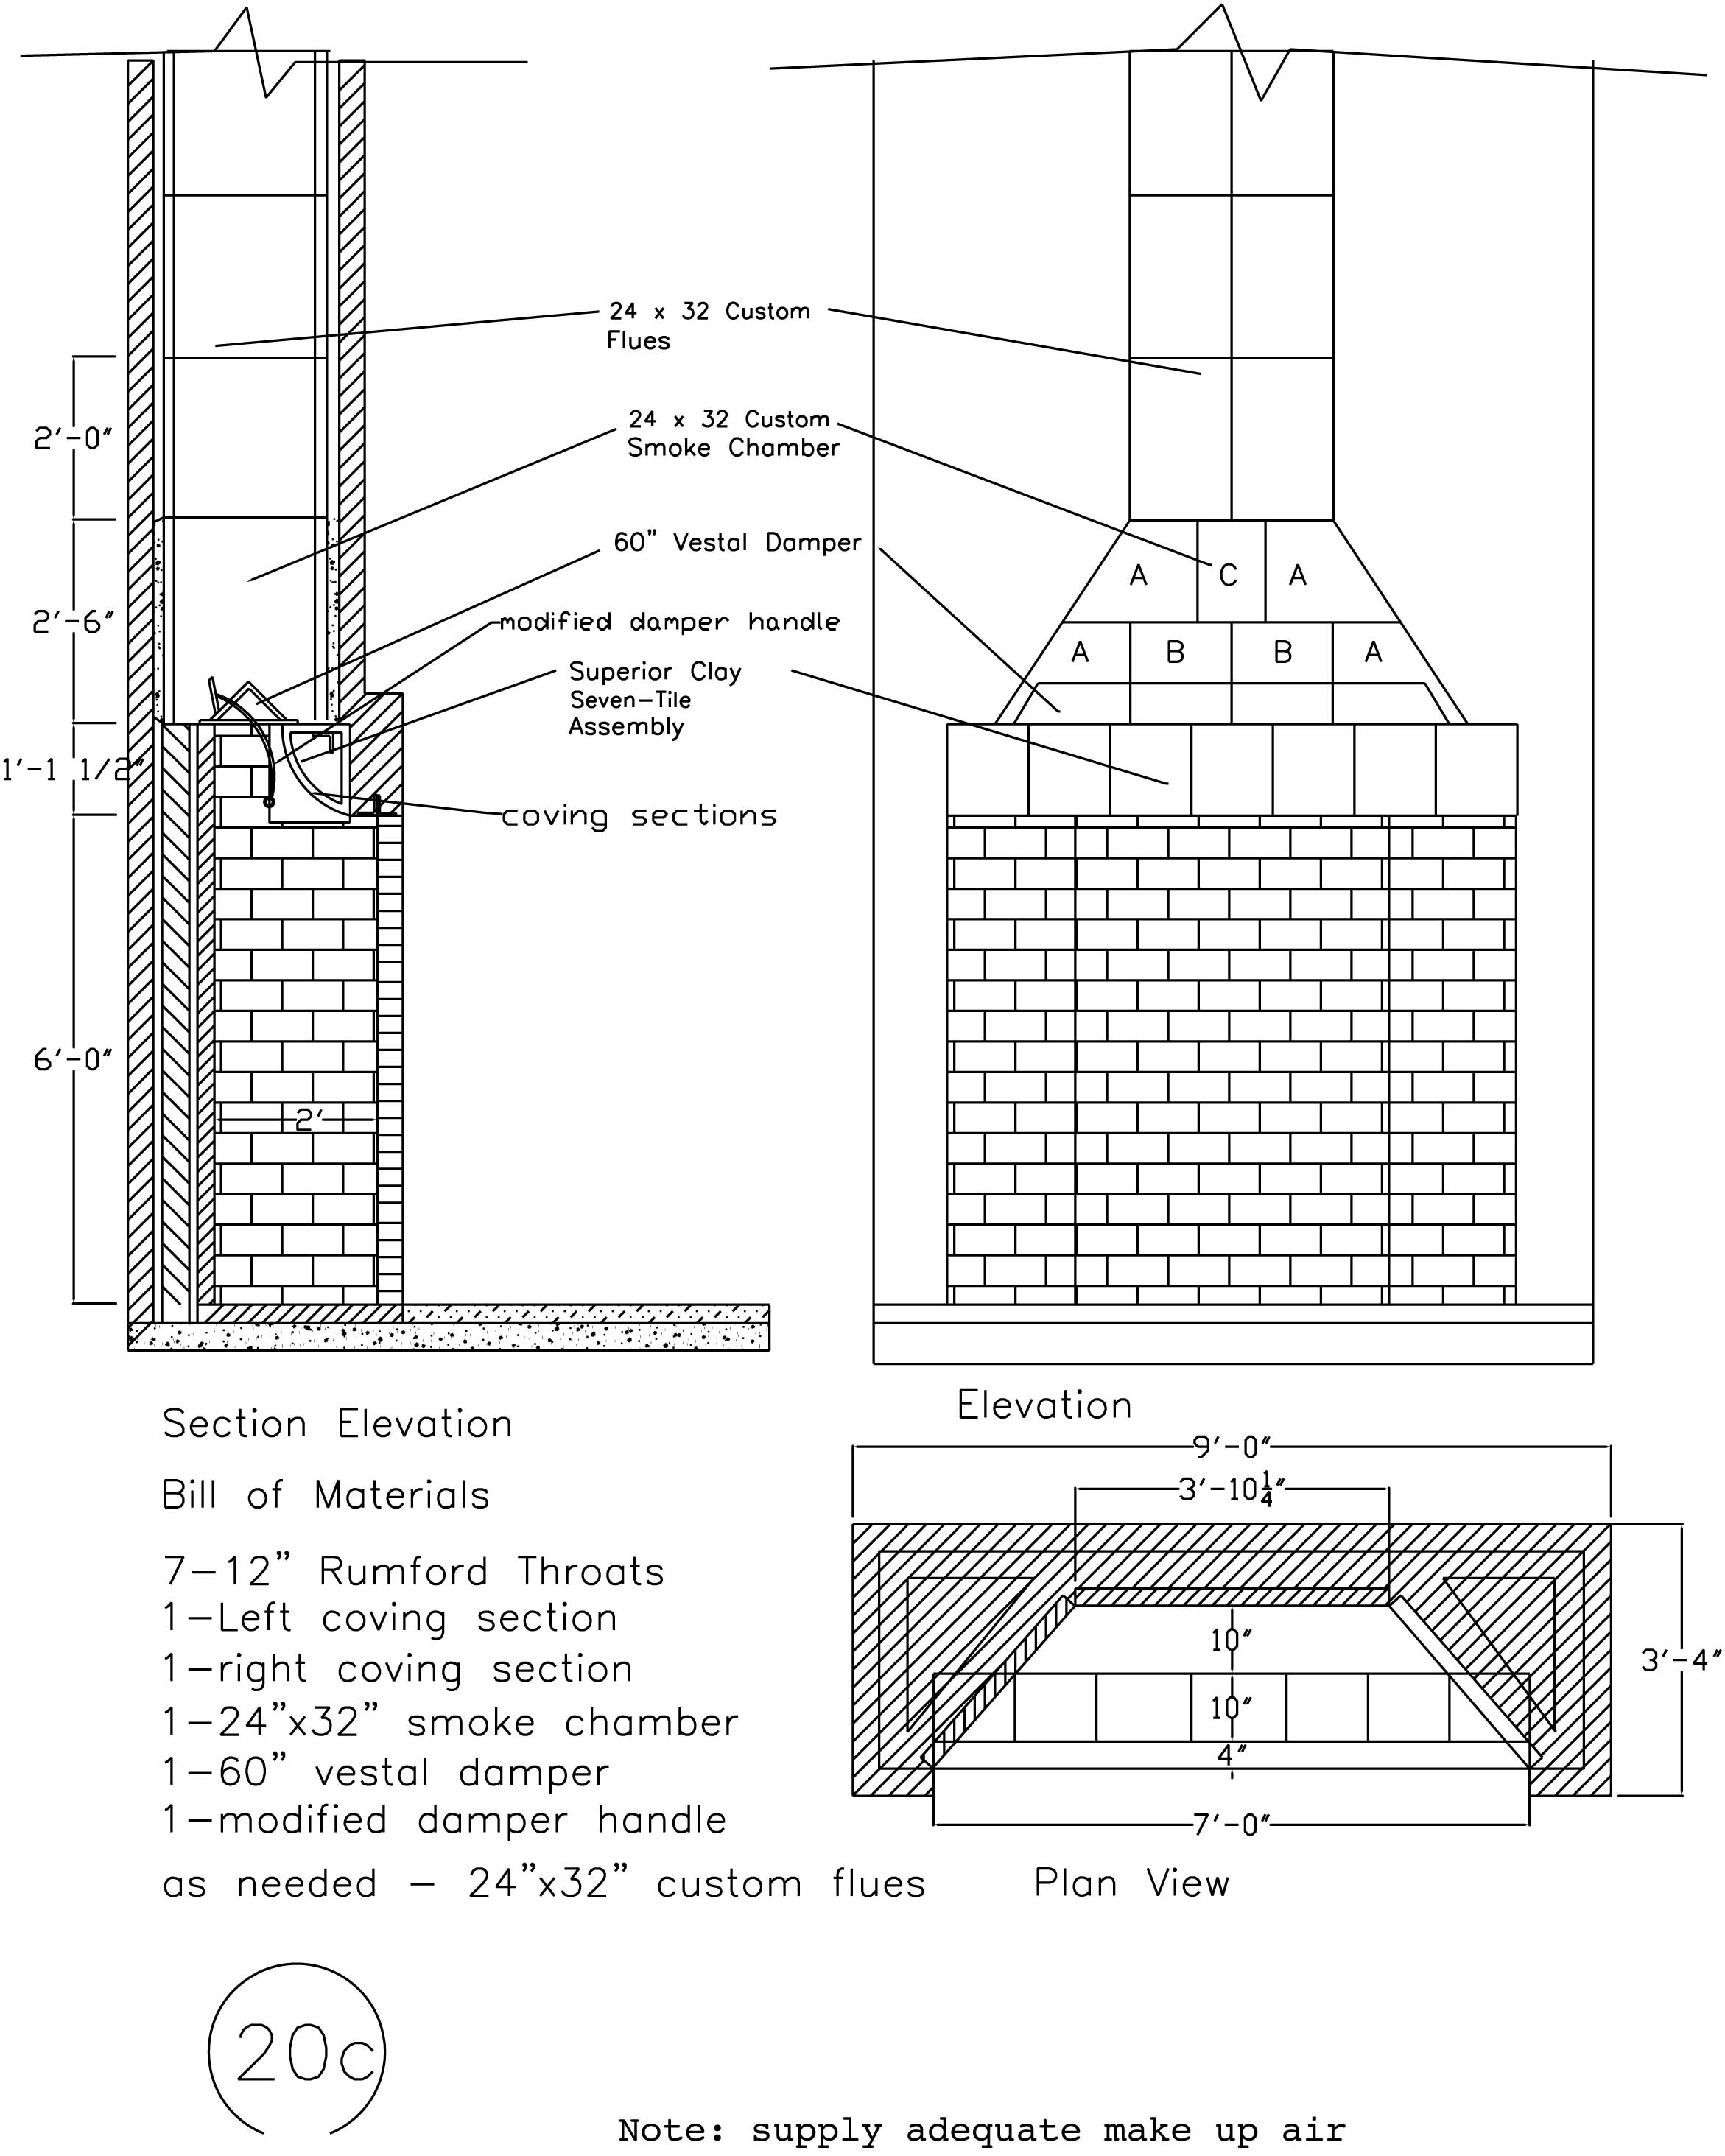 schematic with masonry fireplace dimensions illustration 1950 Willys Wagon  1952 Willys